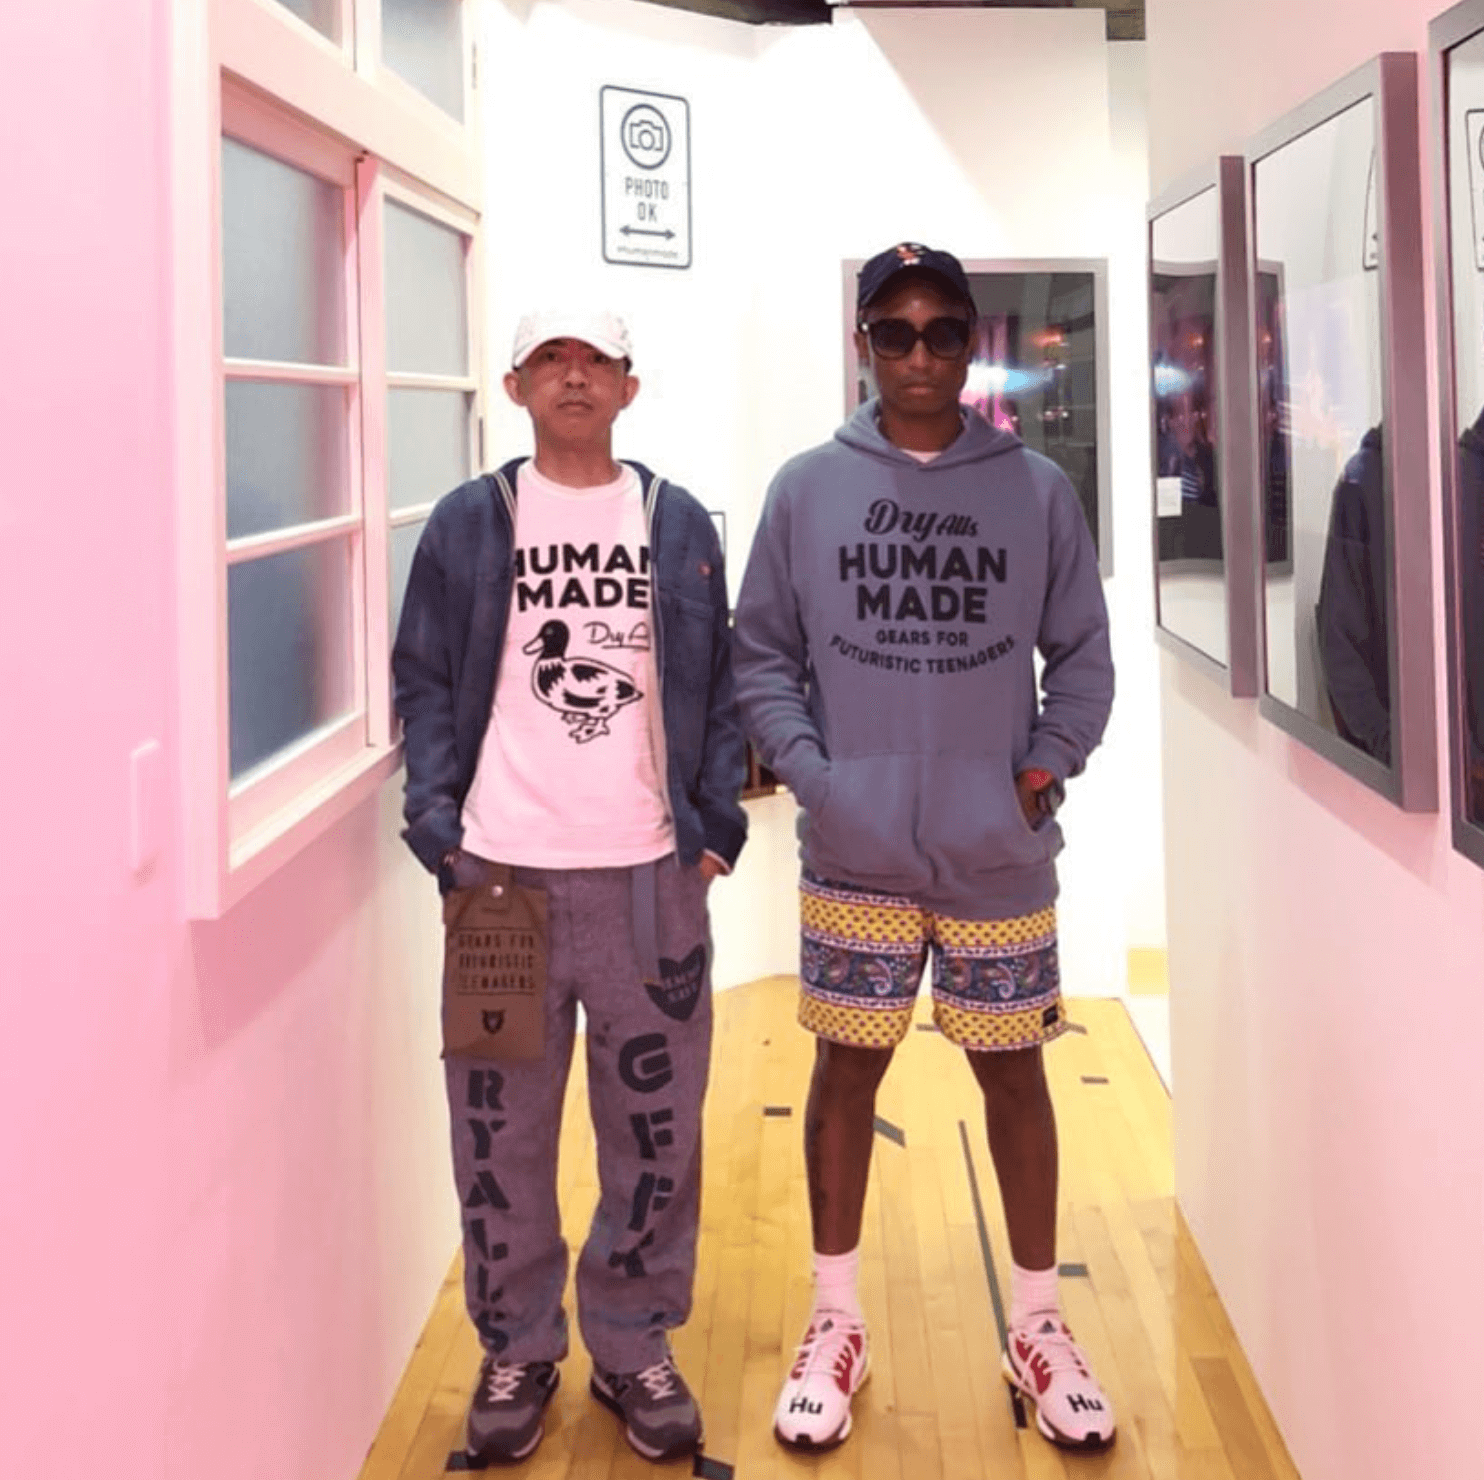 Nigo in the New Balance & Pharrell Williams in the Pharrell Williams x Adidas Solar Glide Hu ST